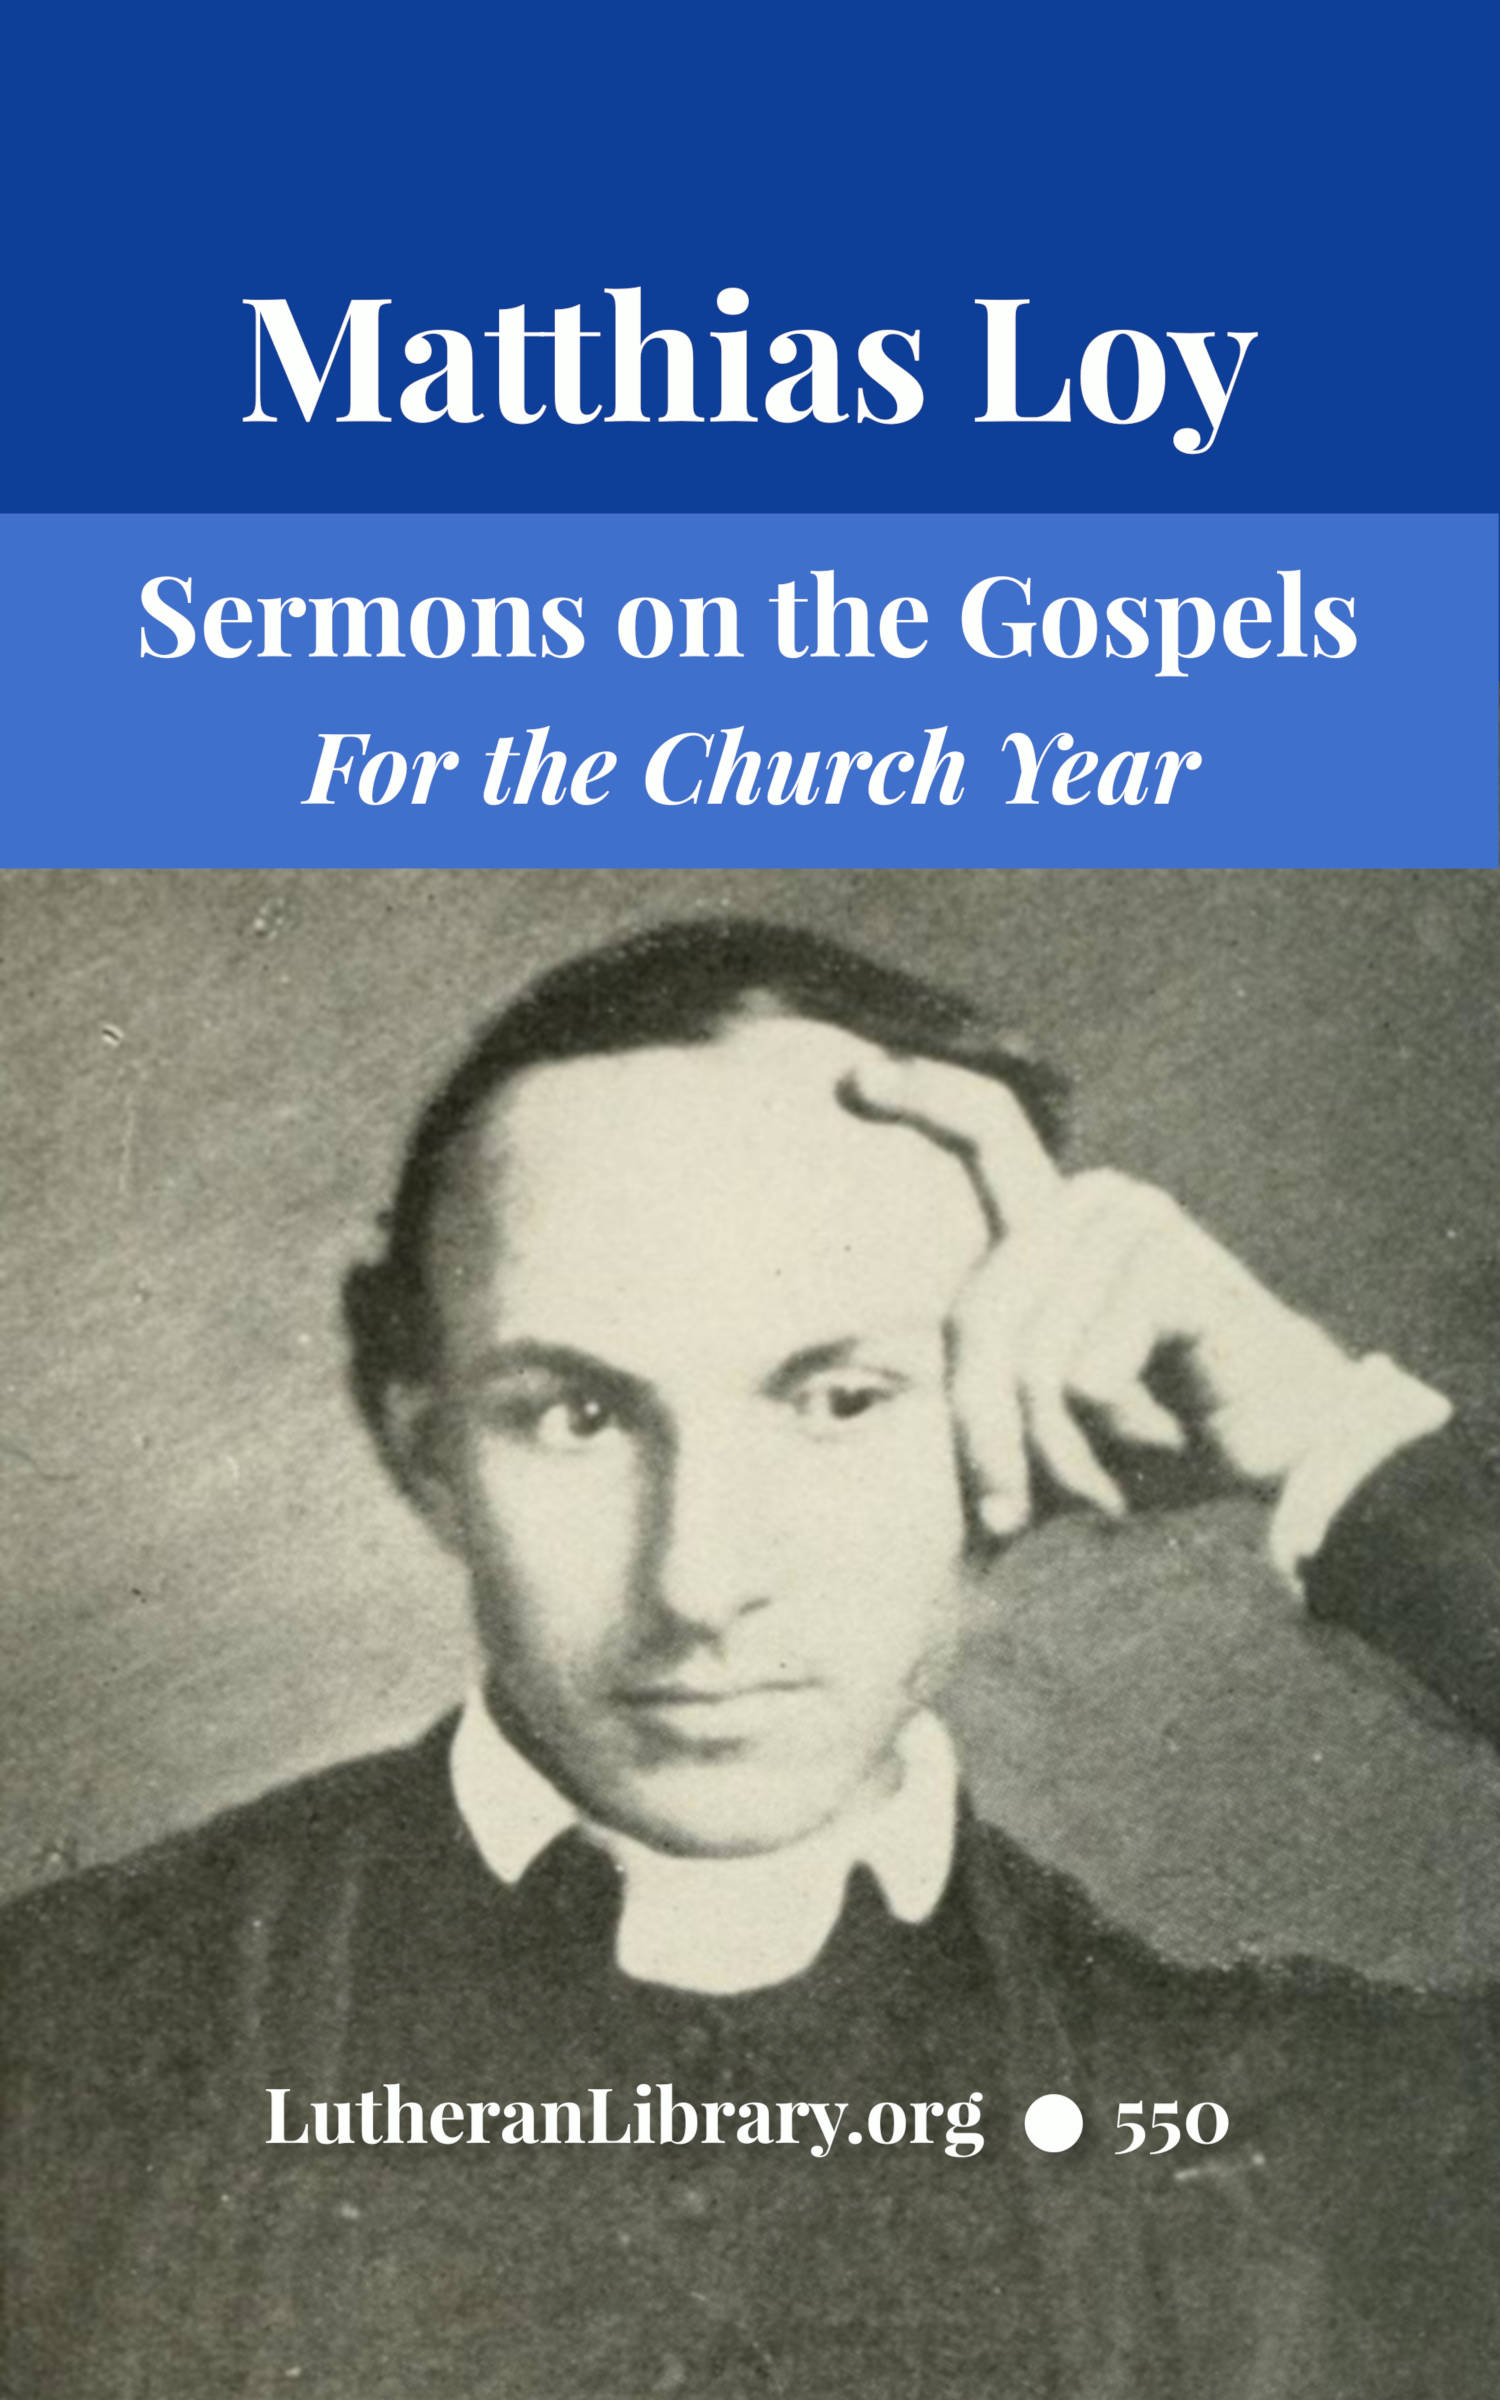 Sermons on the Gospels by Matthias Loy